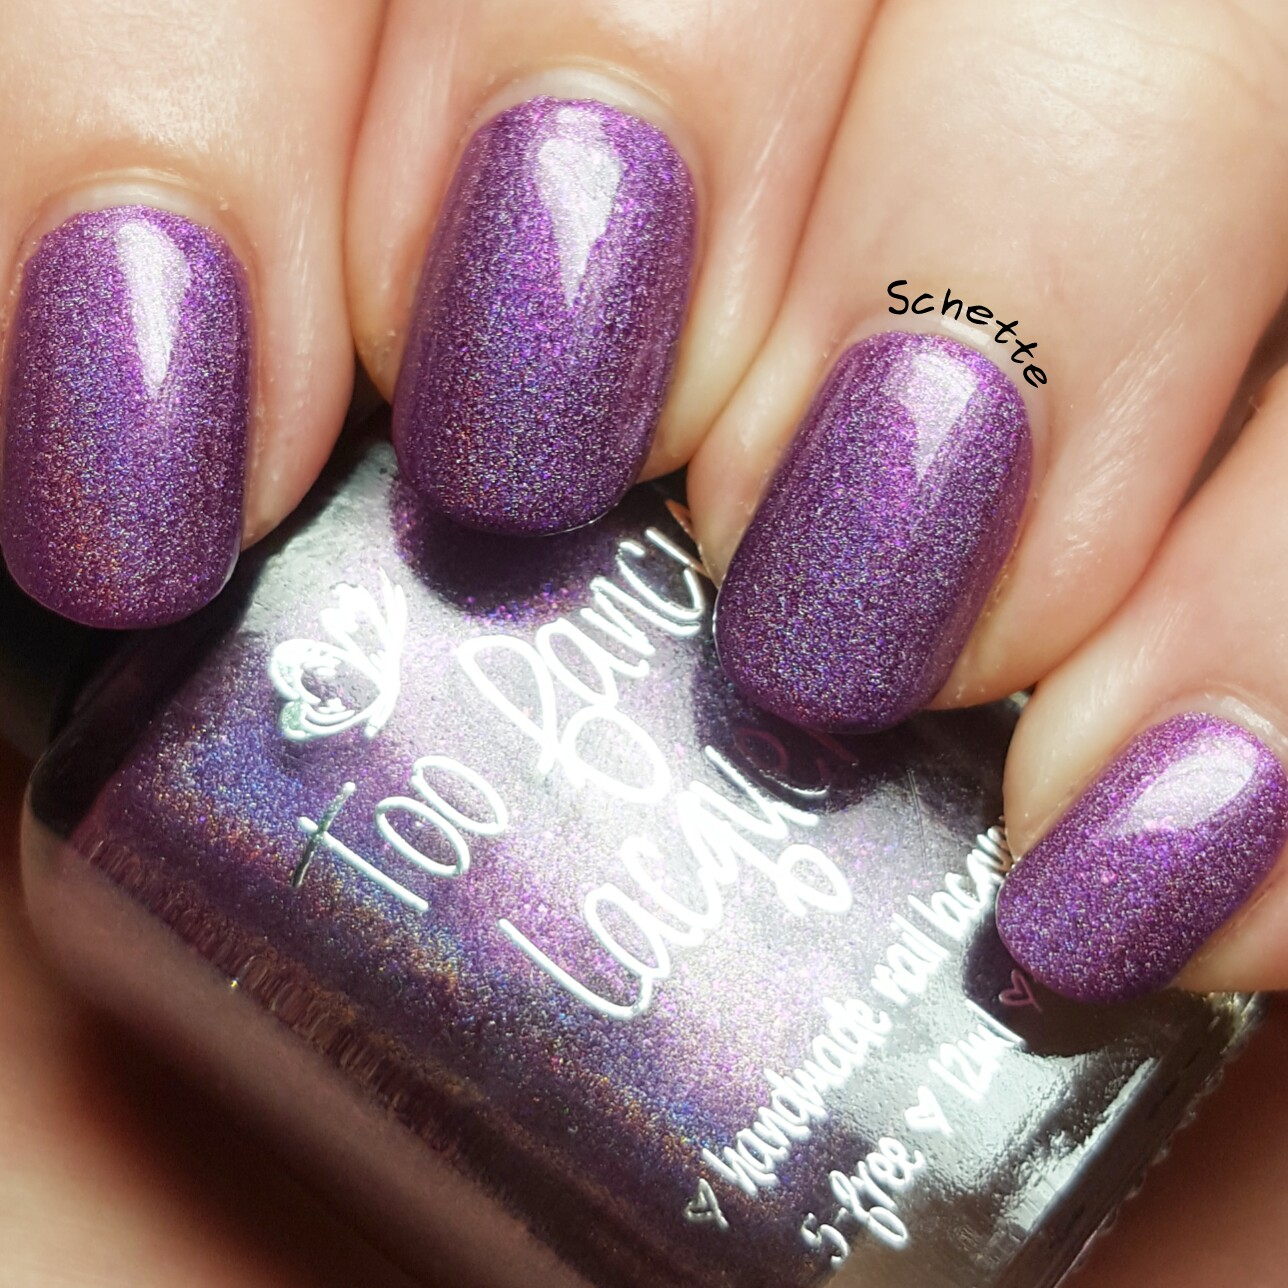 Too Fancy Lacquer - Sweet hugs